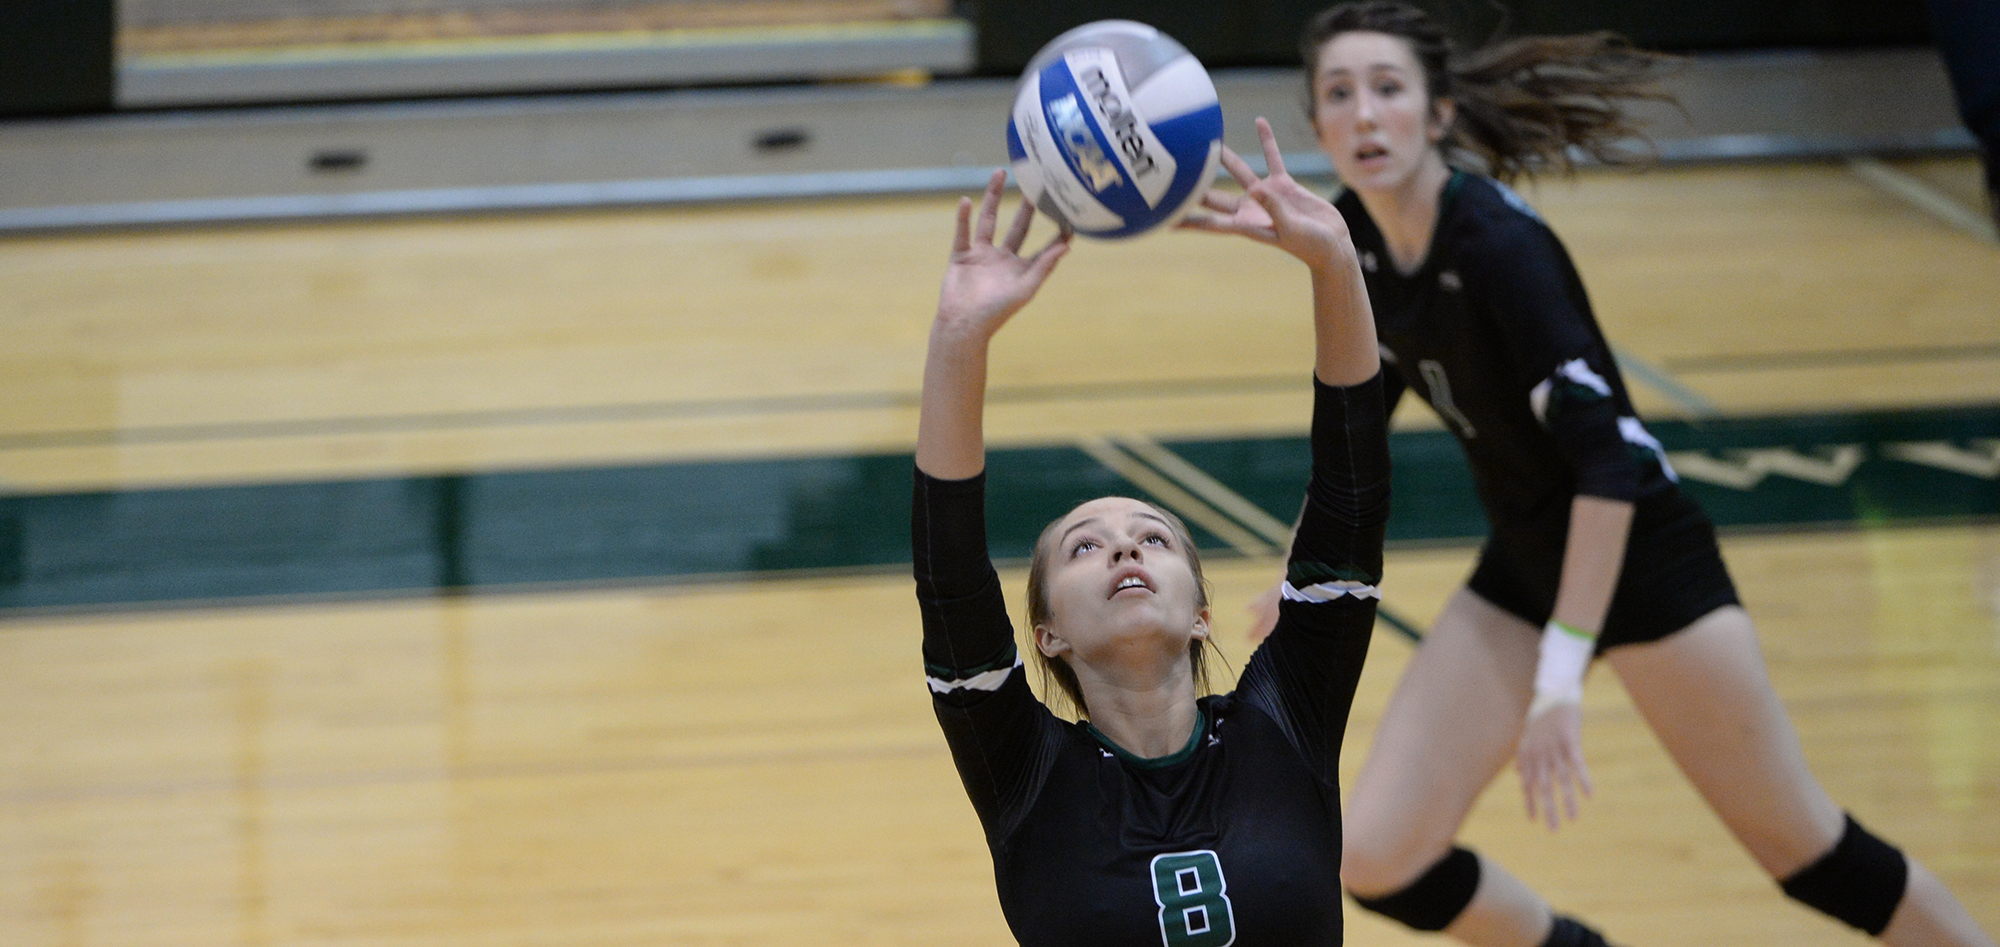 No. 25 Mustangs Win Two More, Extend Win Streak to 15